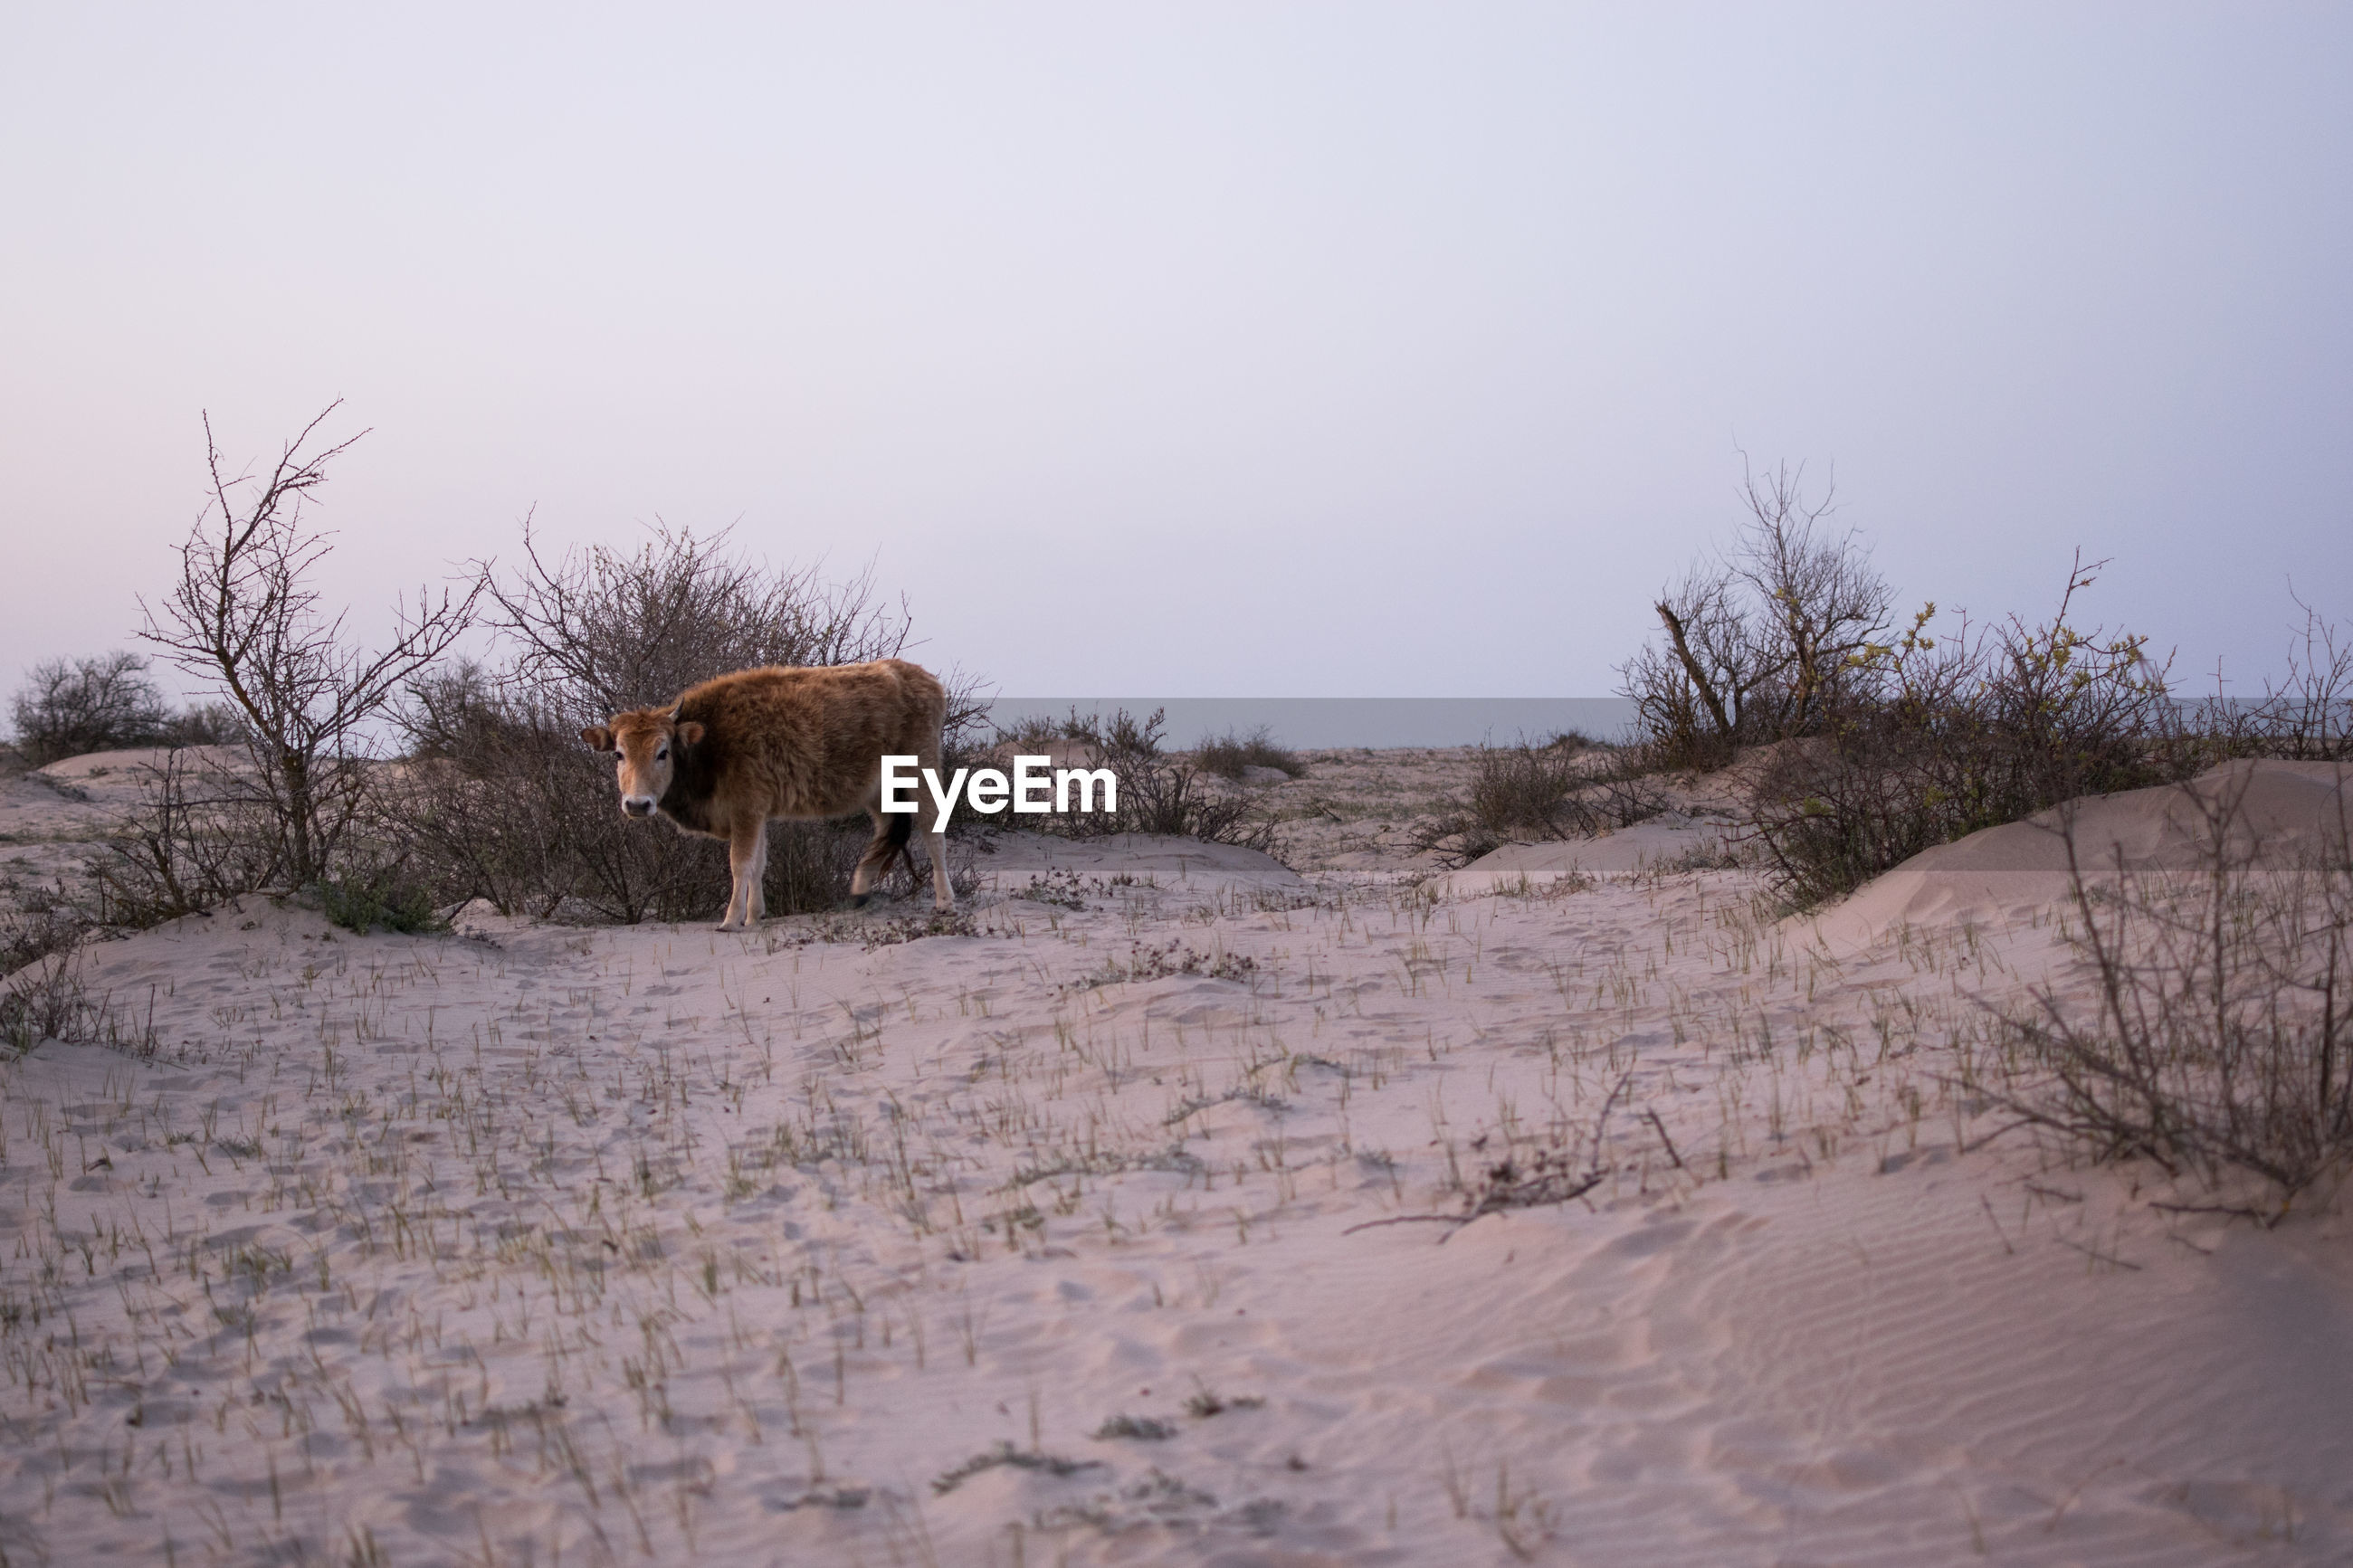 View of horse on sandy beach